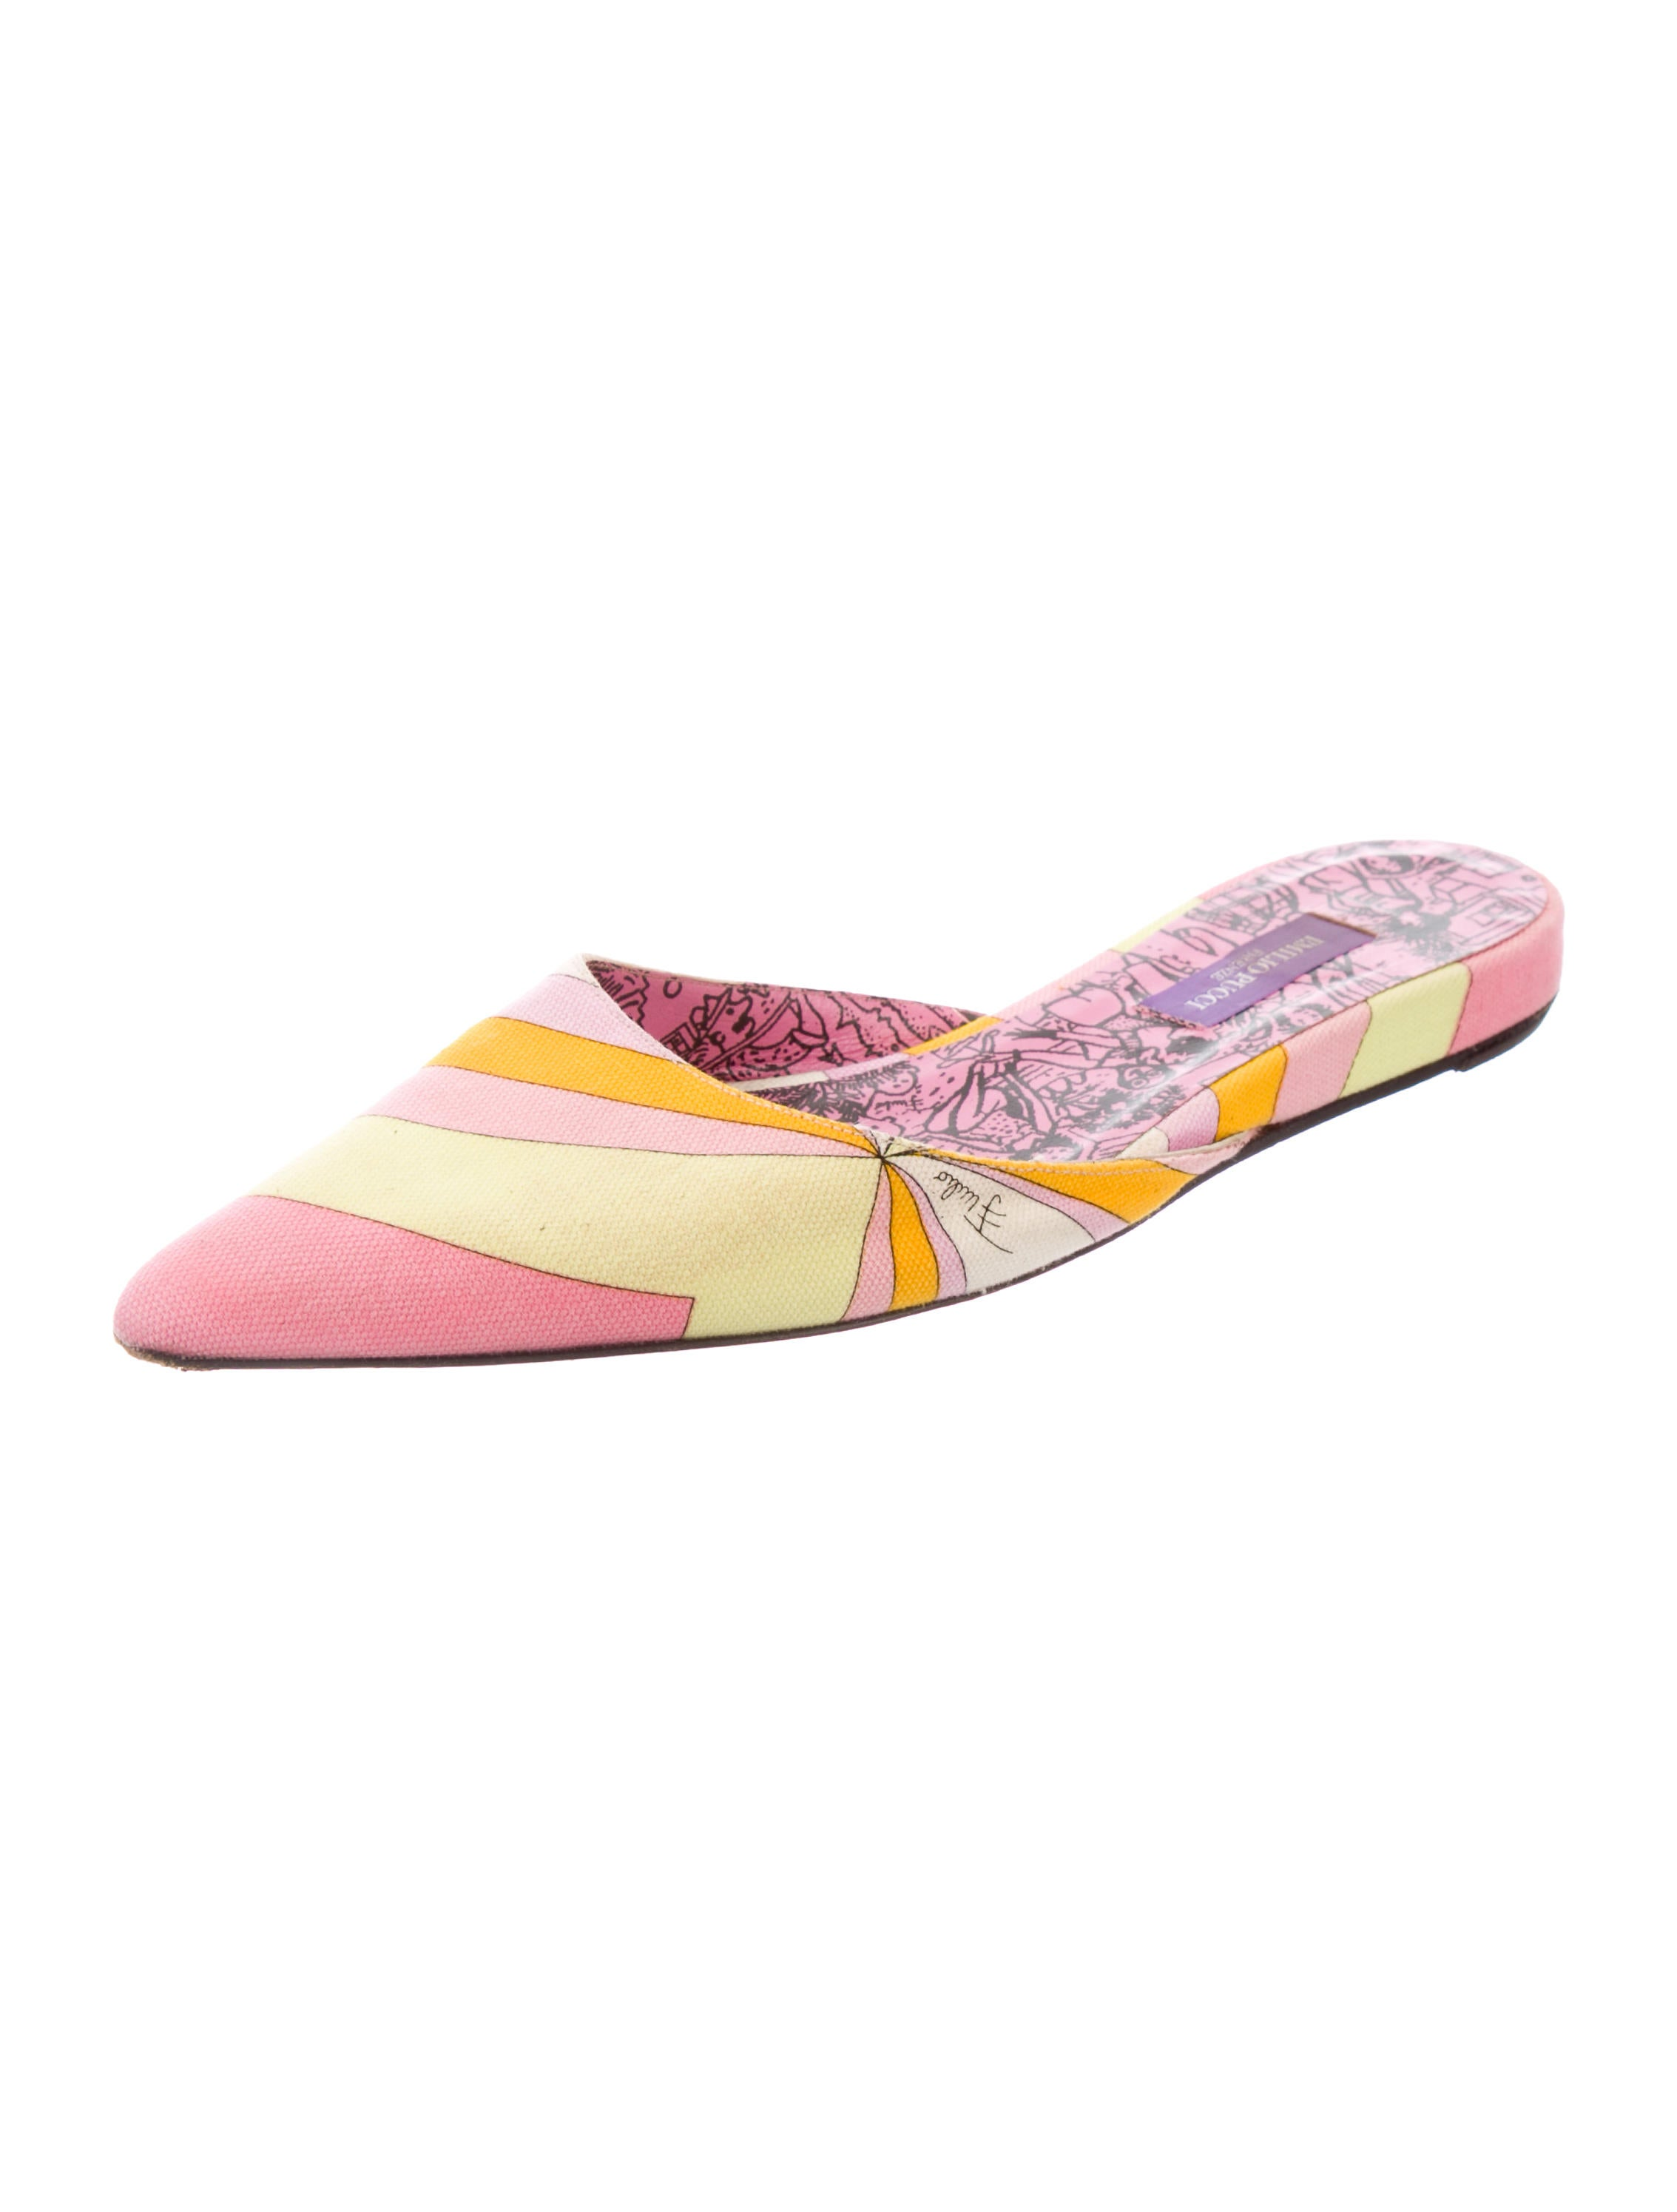 Emilio Pucci Canvas Pointed-Toe Mules footlocker store for sale sale new arrival get authentic cheap price 2014 unisex sale online 6jb1RxQAV